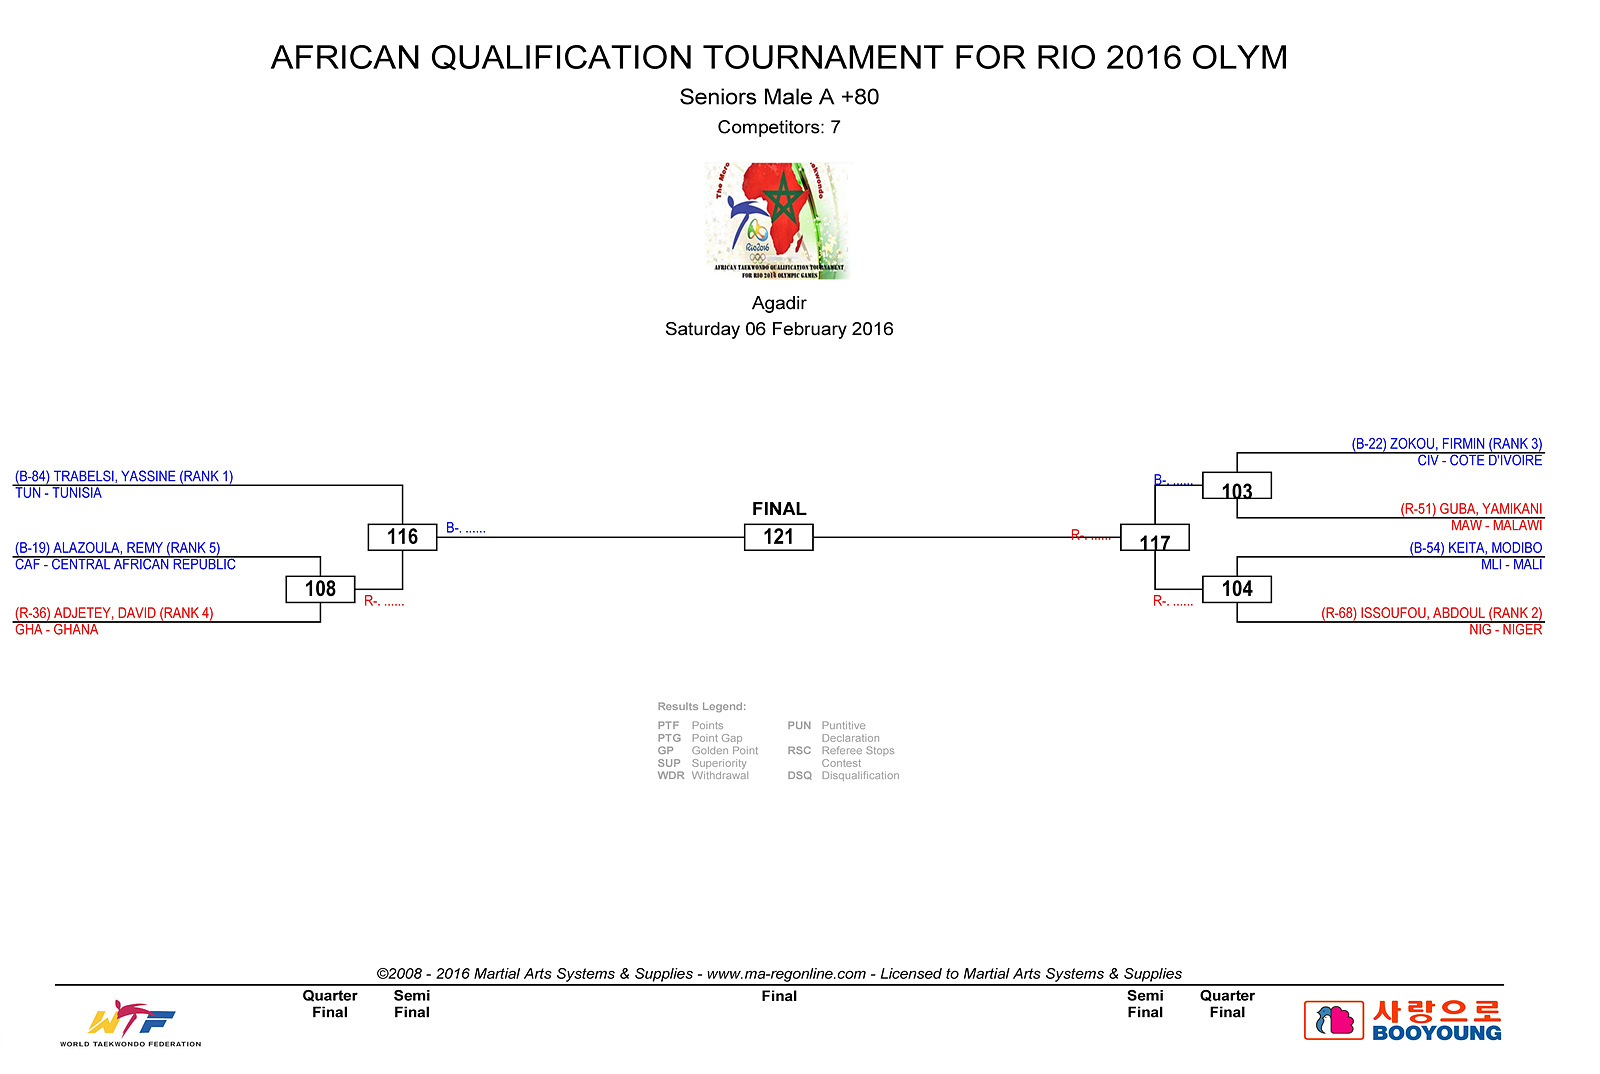 DRAW DAY 1 - AFRICAN_QUALIFICATION_4